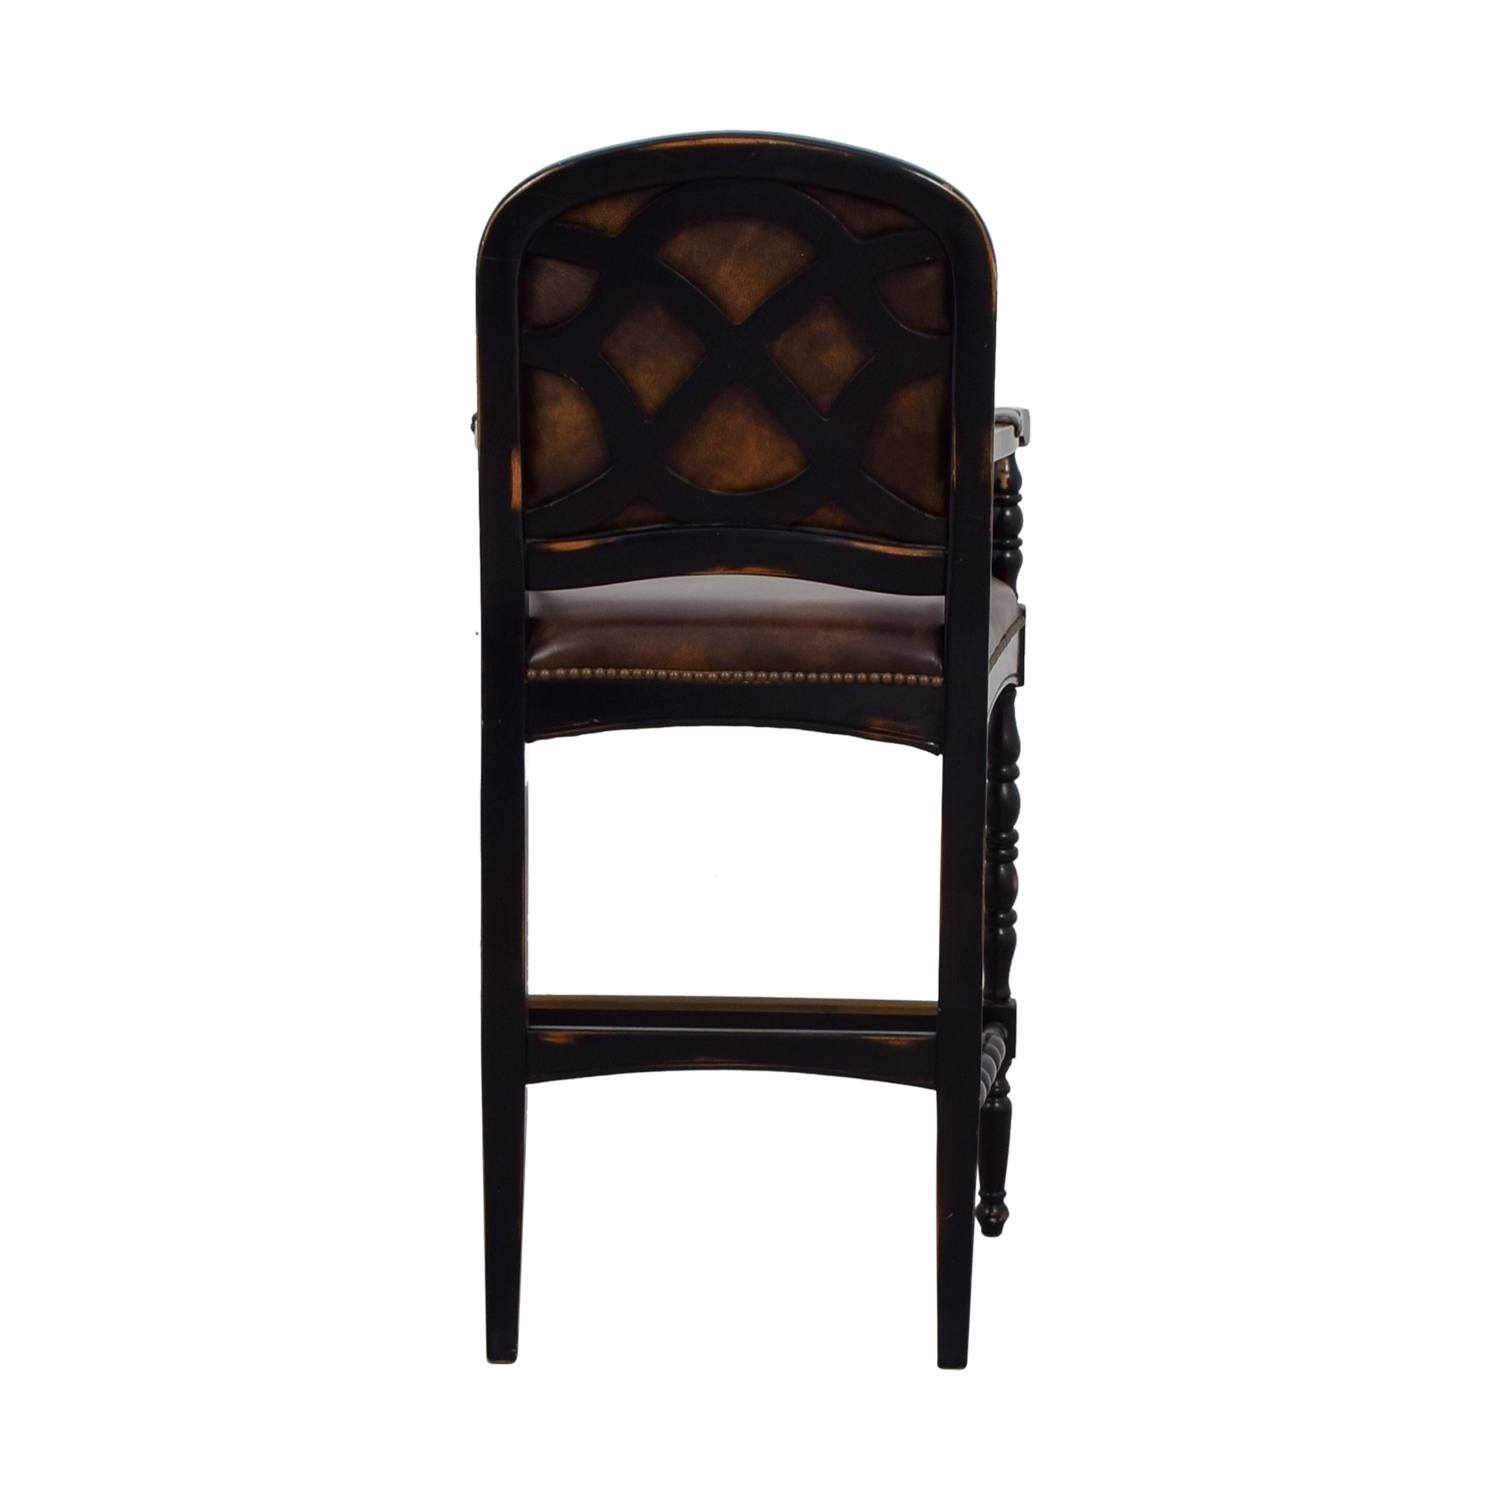 Leather Barstool Chair Nyc; Shop Leather Barstool Chair Online ...